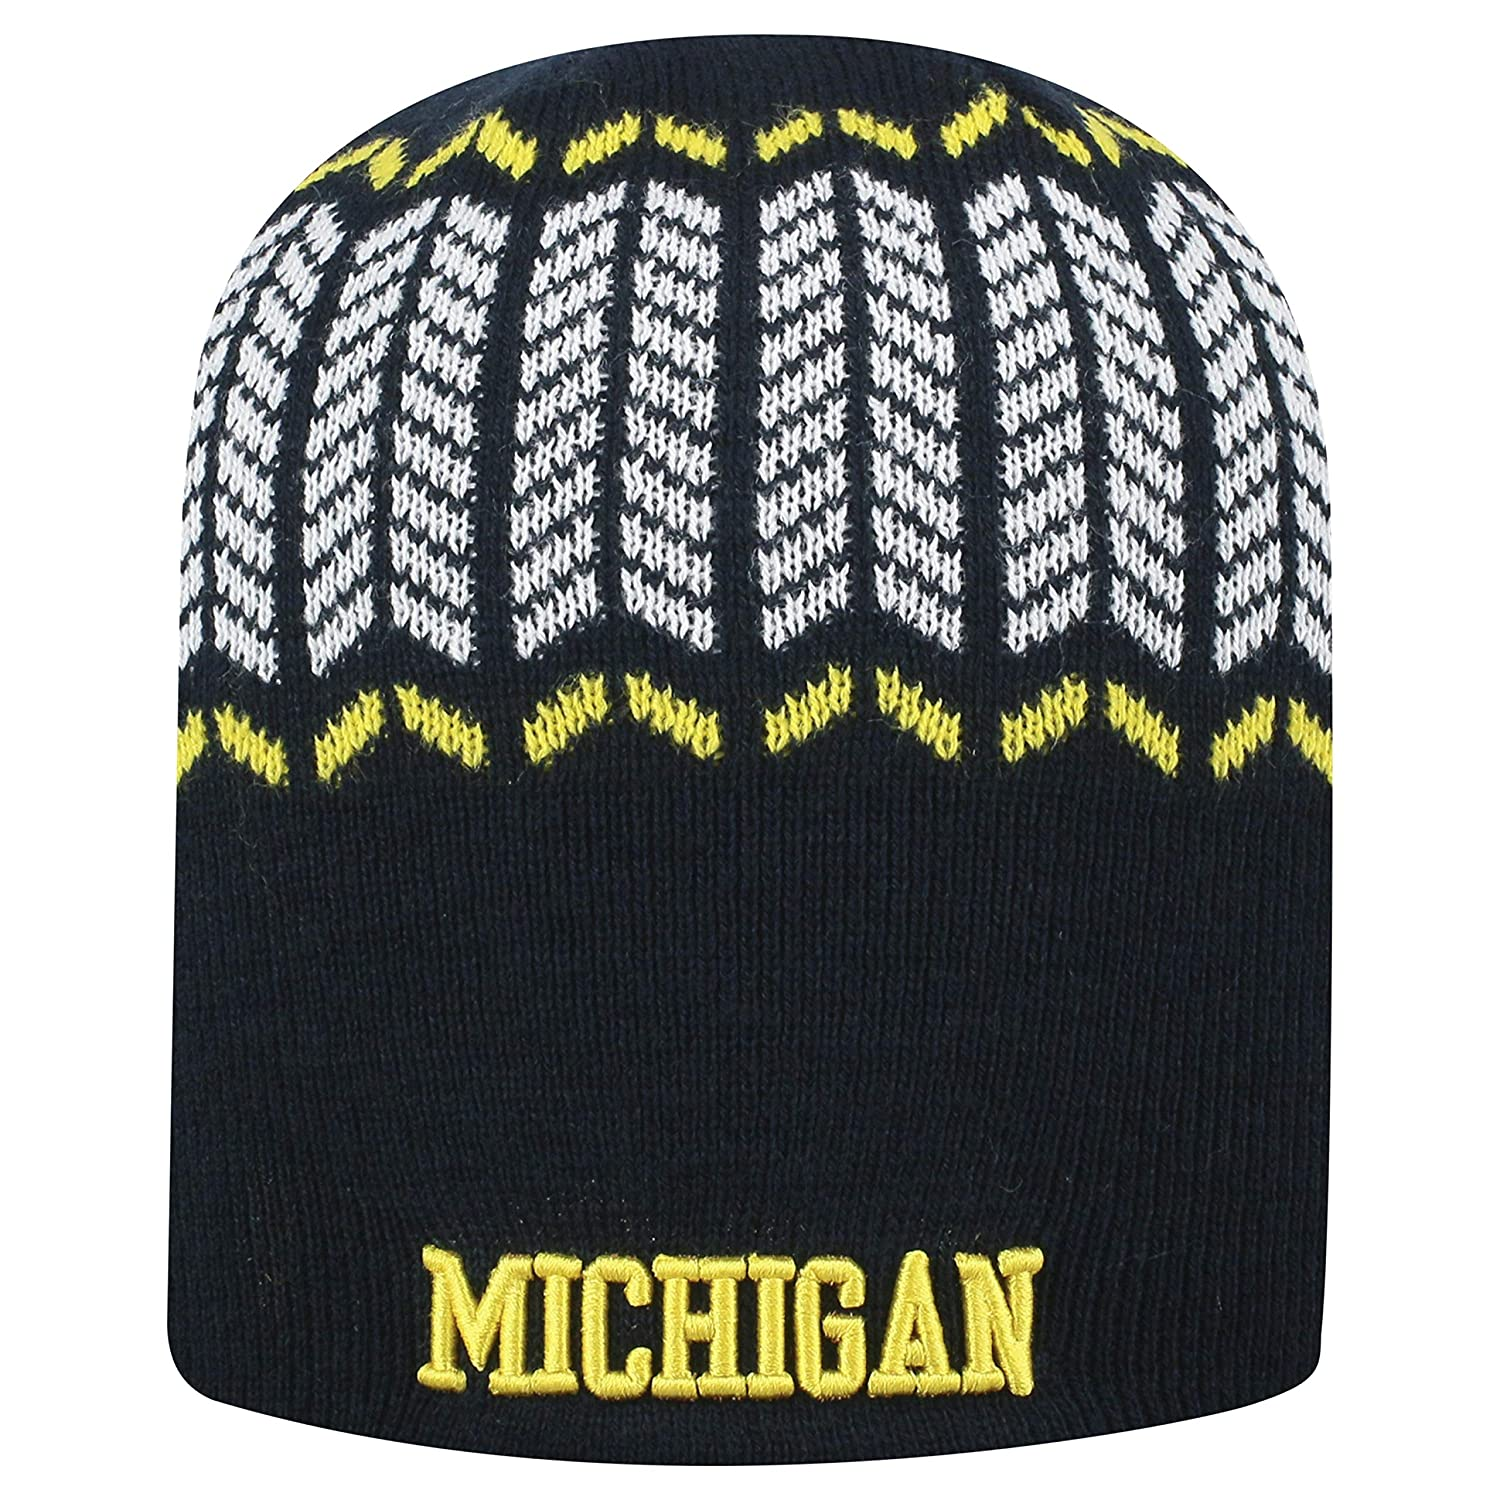 Top of the World Michigan Wolverines Official NCAA Uncuffed Knit Sports Stripe Beanie Hat 744742